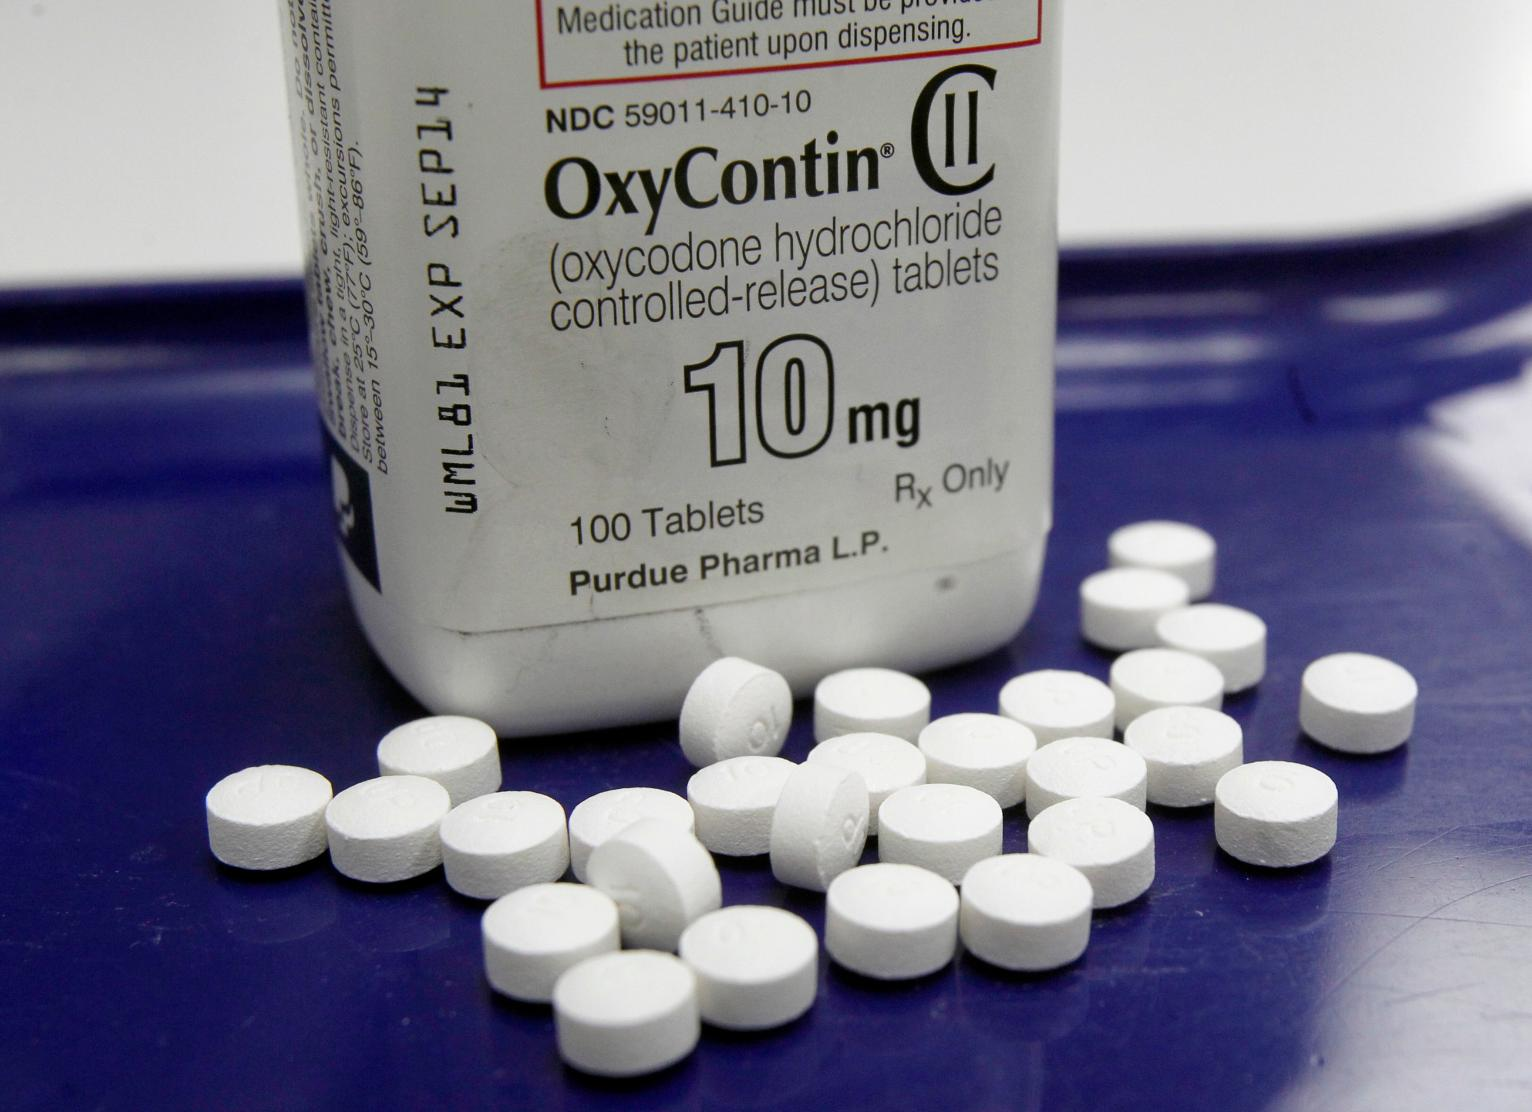 Nearly 1 In 3 On Medicare Getmonly Abused Opioids National News Us News How  To Apply